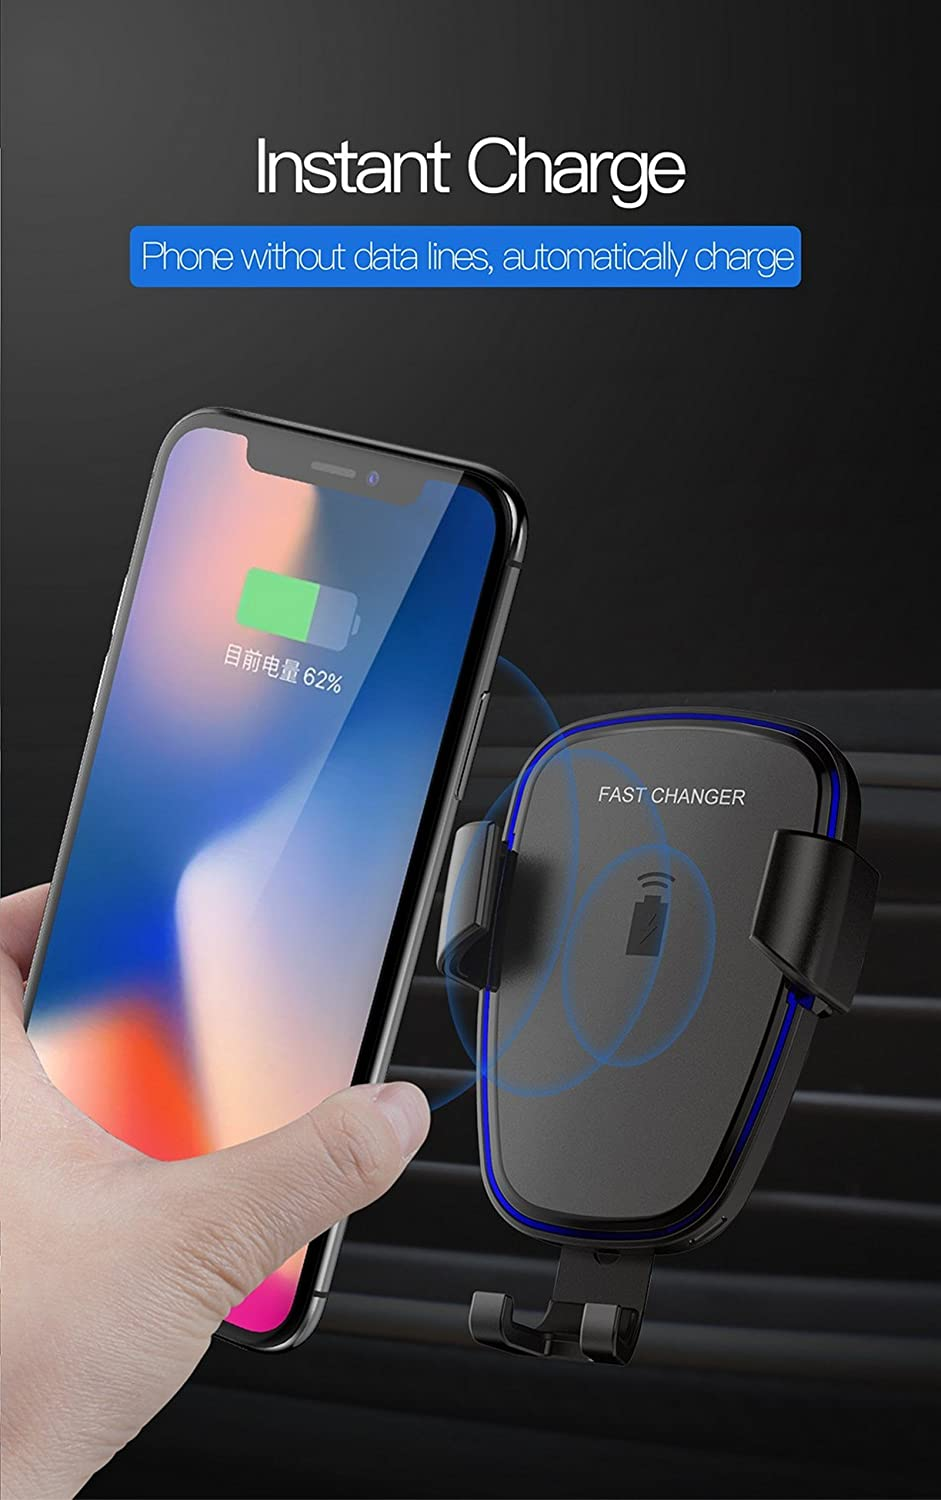 8//8 Plus /& Qi Enabled Devices CW12 Vent Mount LY S7//S7 Edge Note 8 5 /& Standard Charge for iPhone X Lian LifeStyle Qi Wireless Fast Charge Car Mount for Samsung Galaxy S8